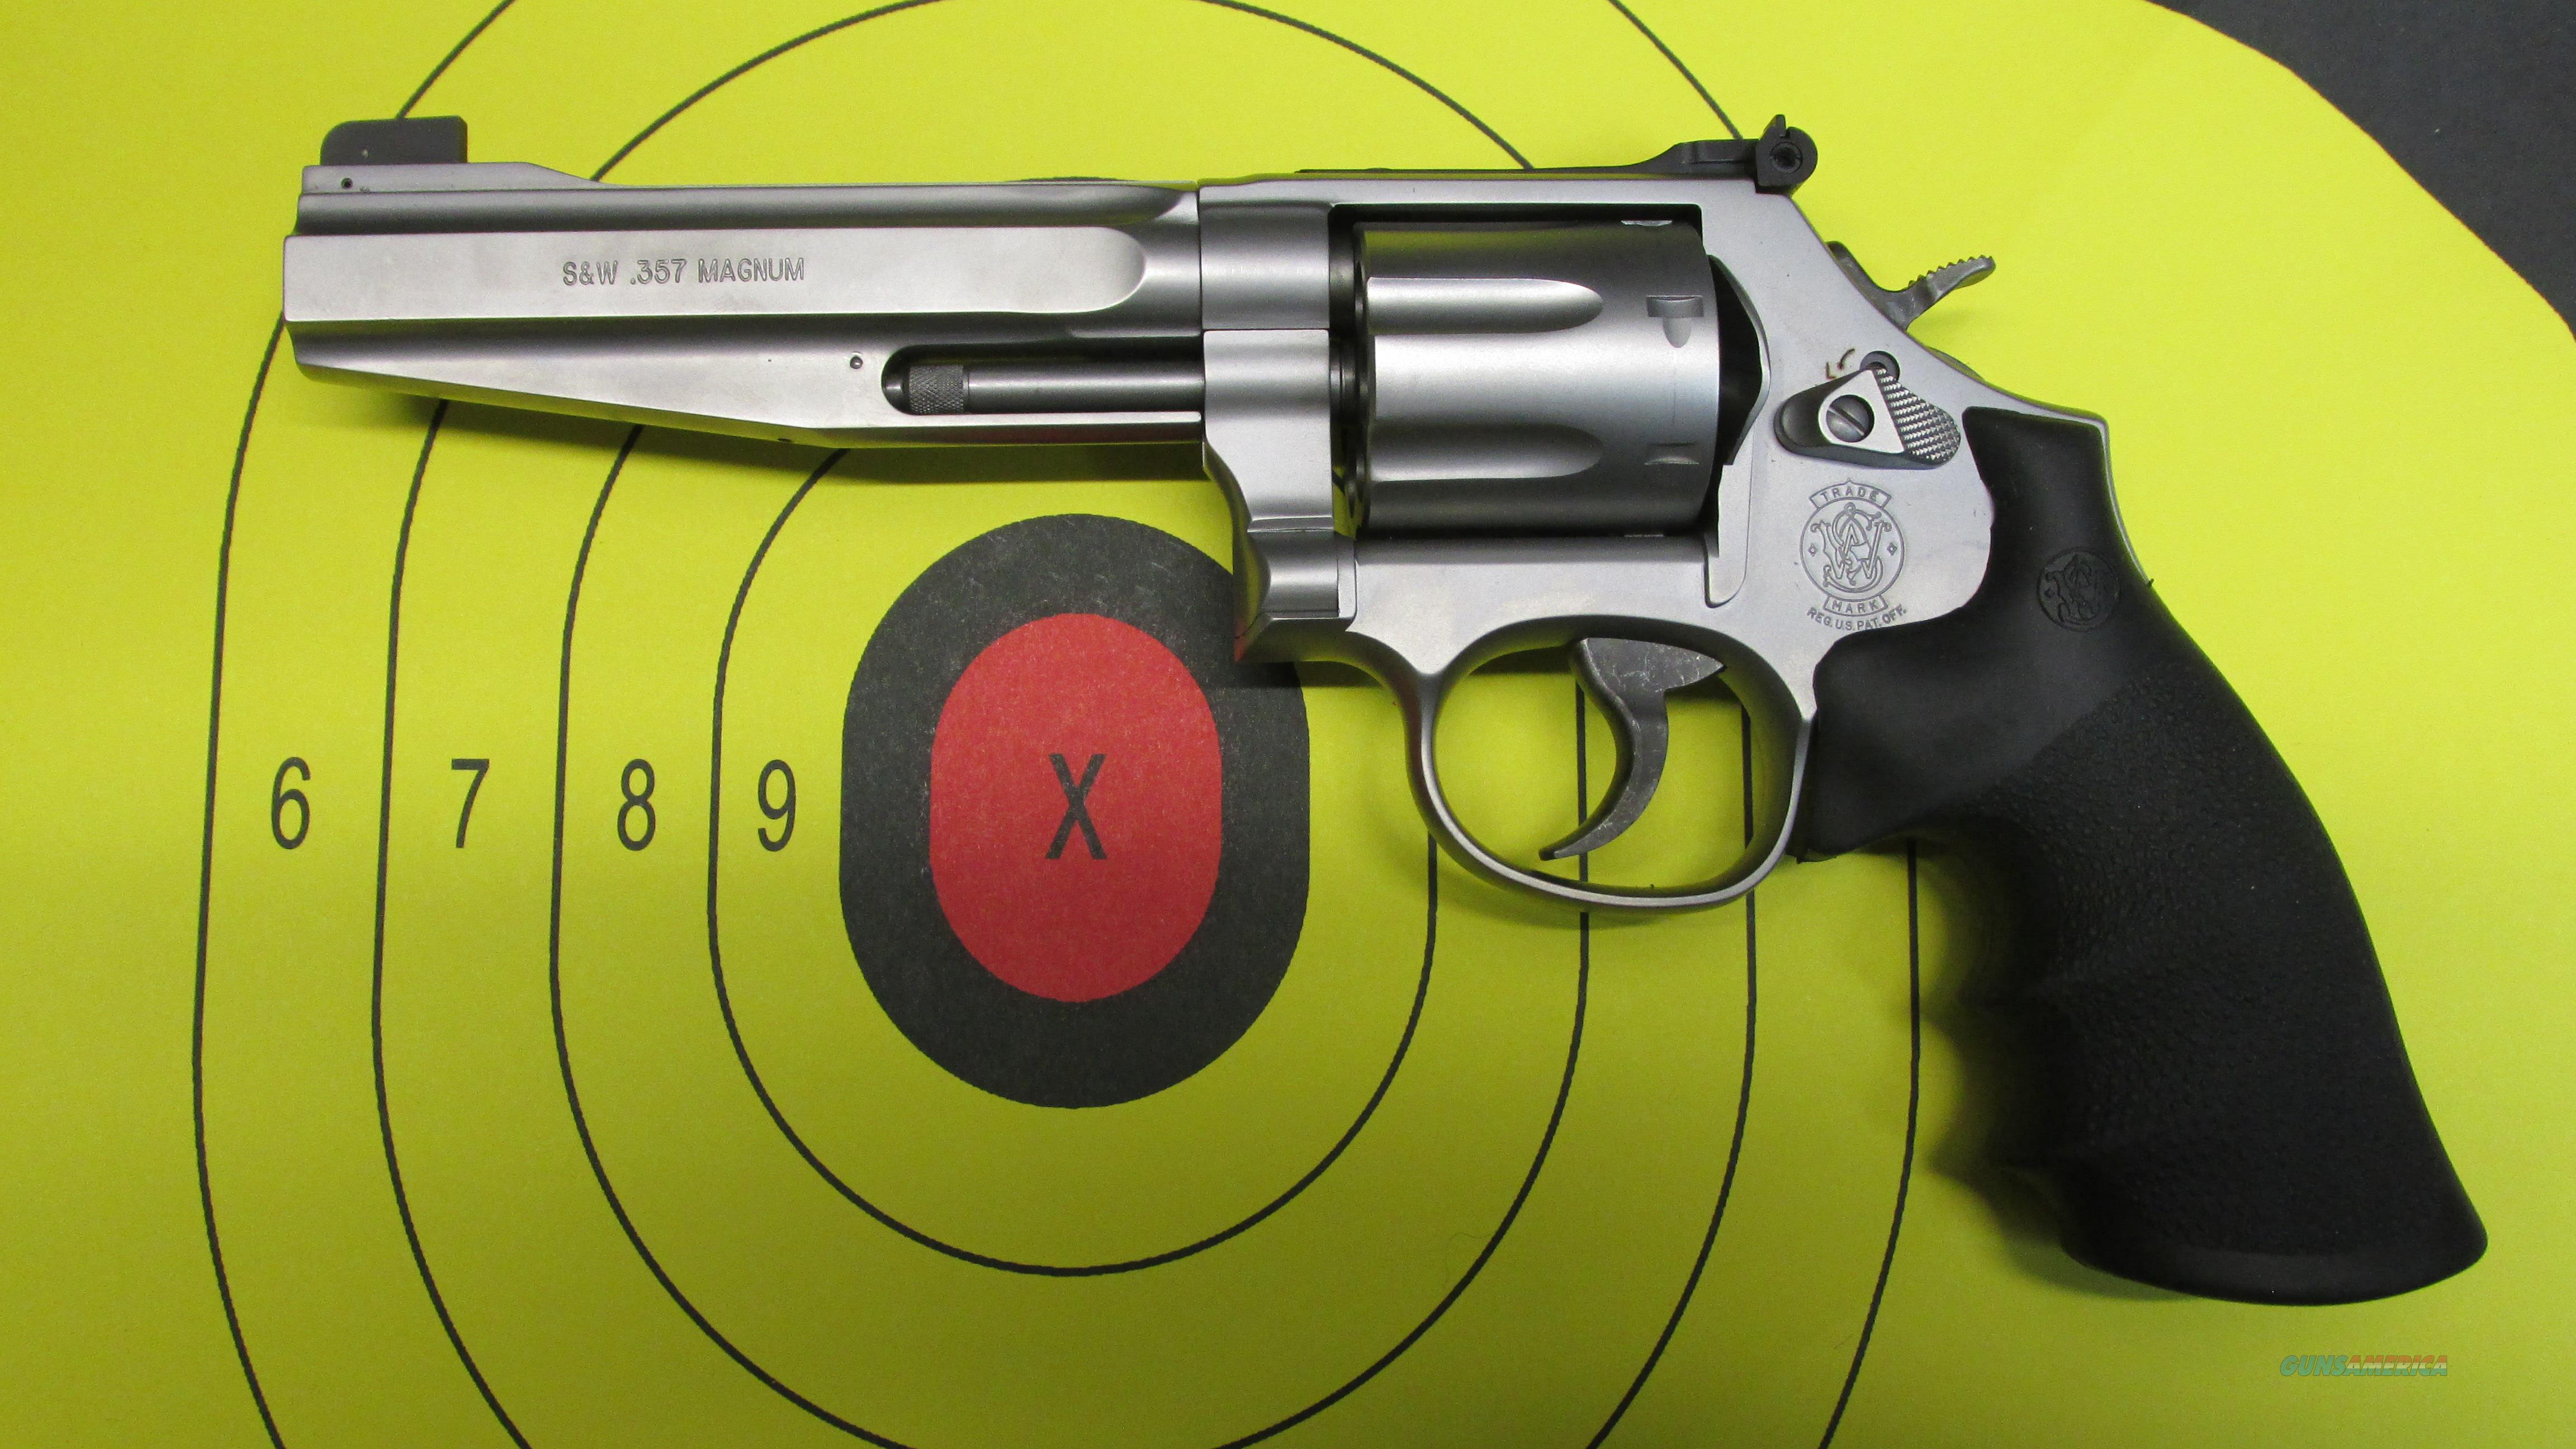 SMITH & WESSON 686 PLUS 7 SHOT REVOLVER  Guns > Pistols > Smith & Wesson Revolvers > Full Frame Revolver